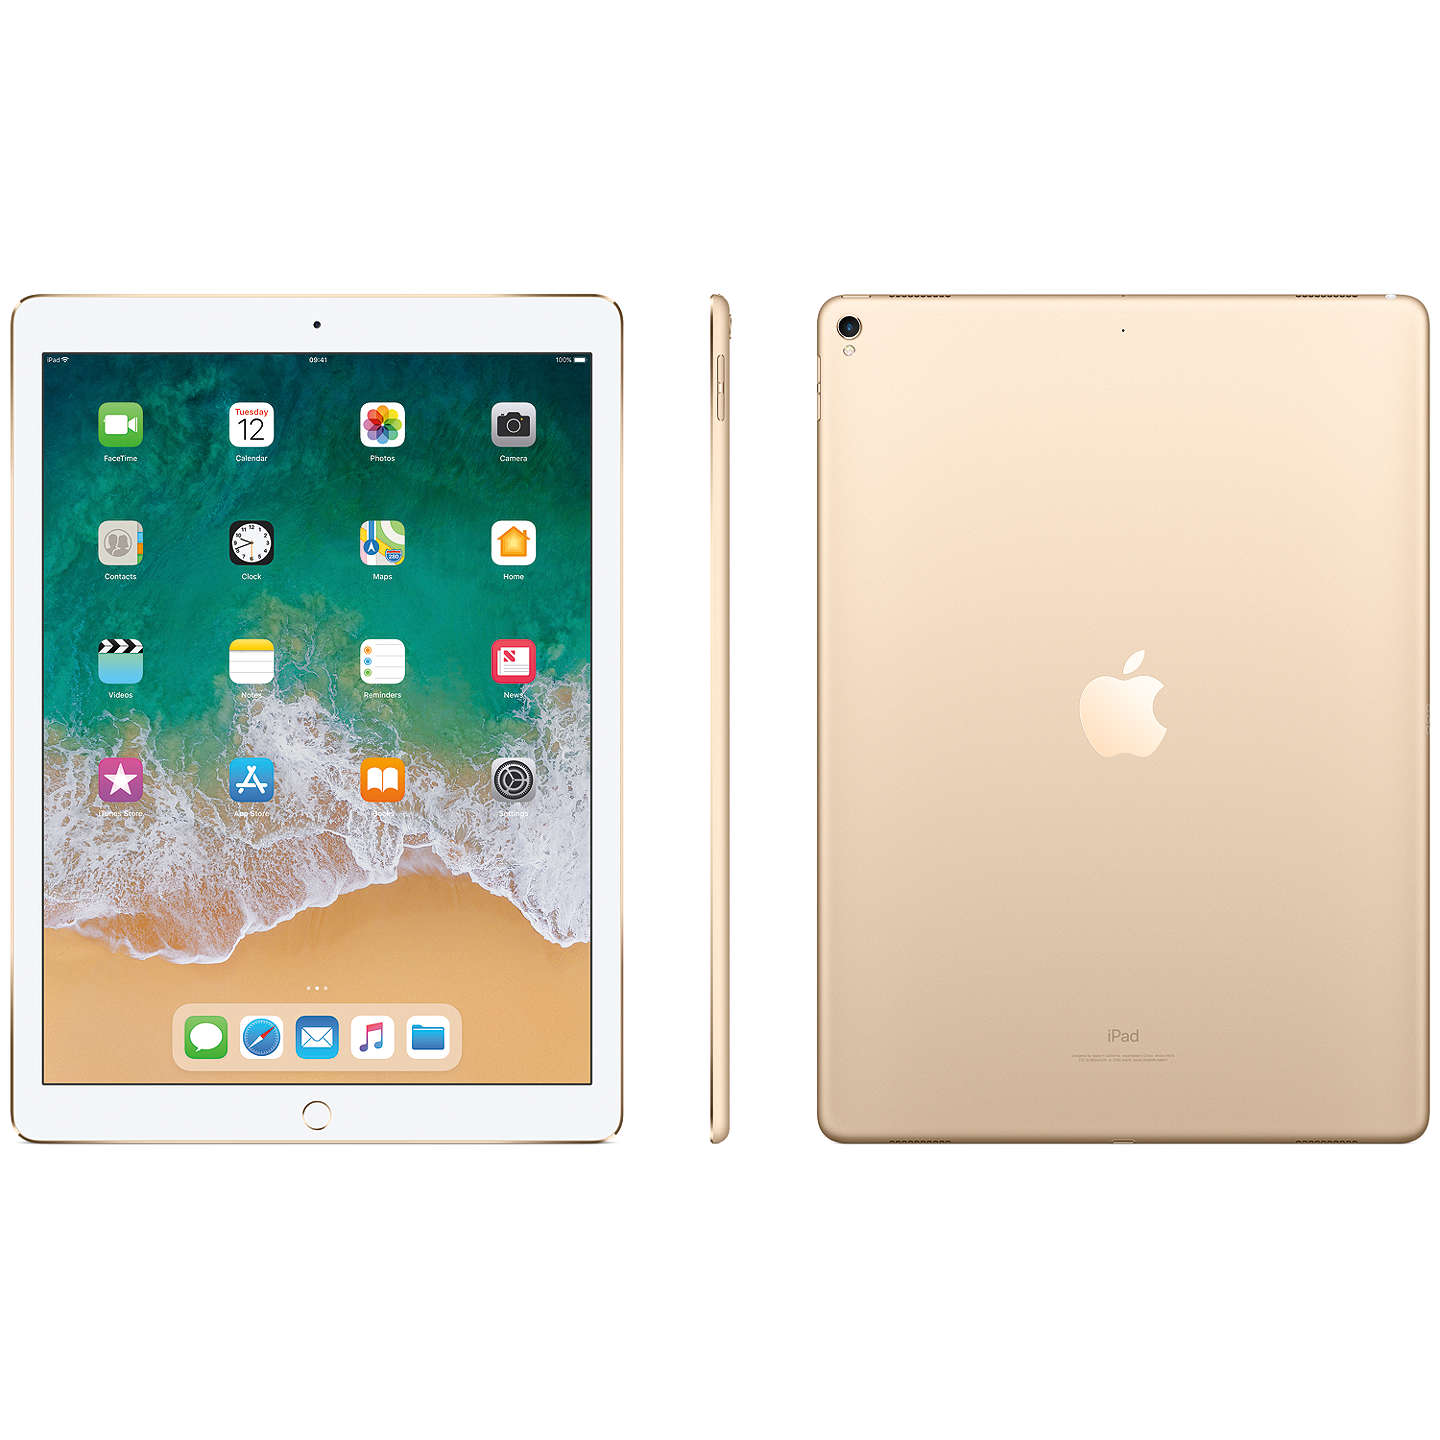 "Buy2017 Apple iPad Pro 12.9"", A10X Fusion, iOS11, Wi-Fi, 64GB, Gold Online at johnlewis.com"